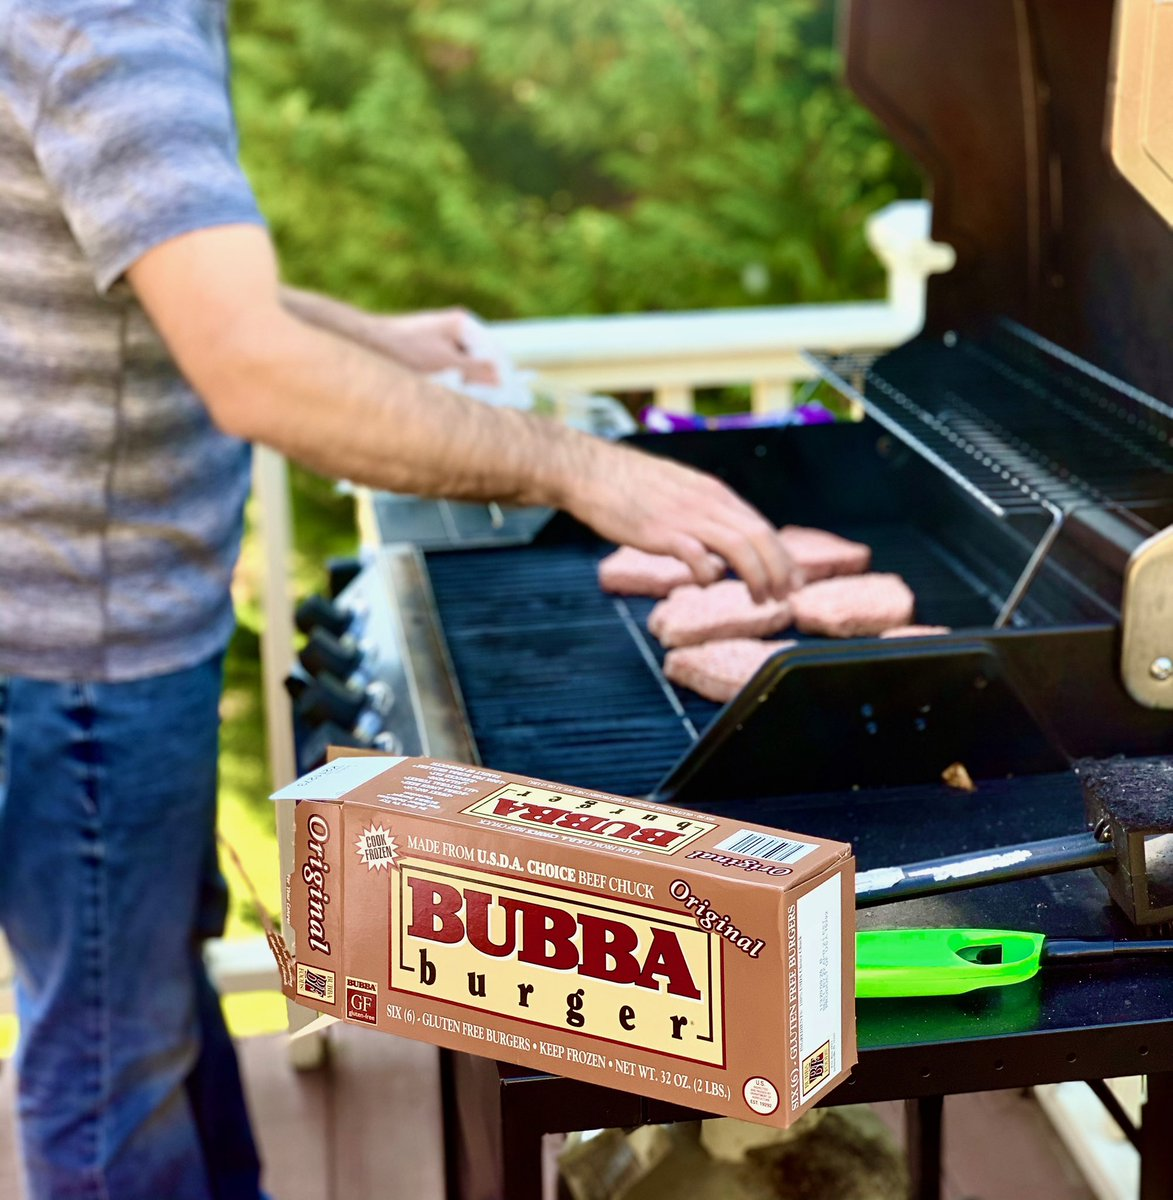 BUBBA burger is ready for a new week! #bubbaburger #stayhomegrillout